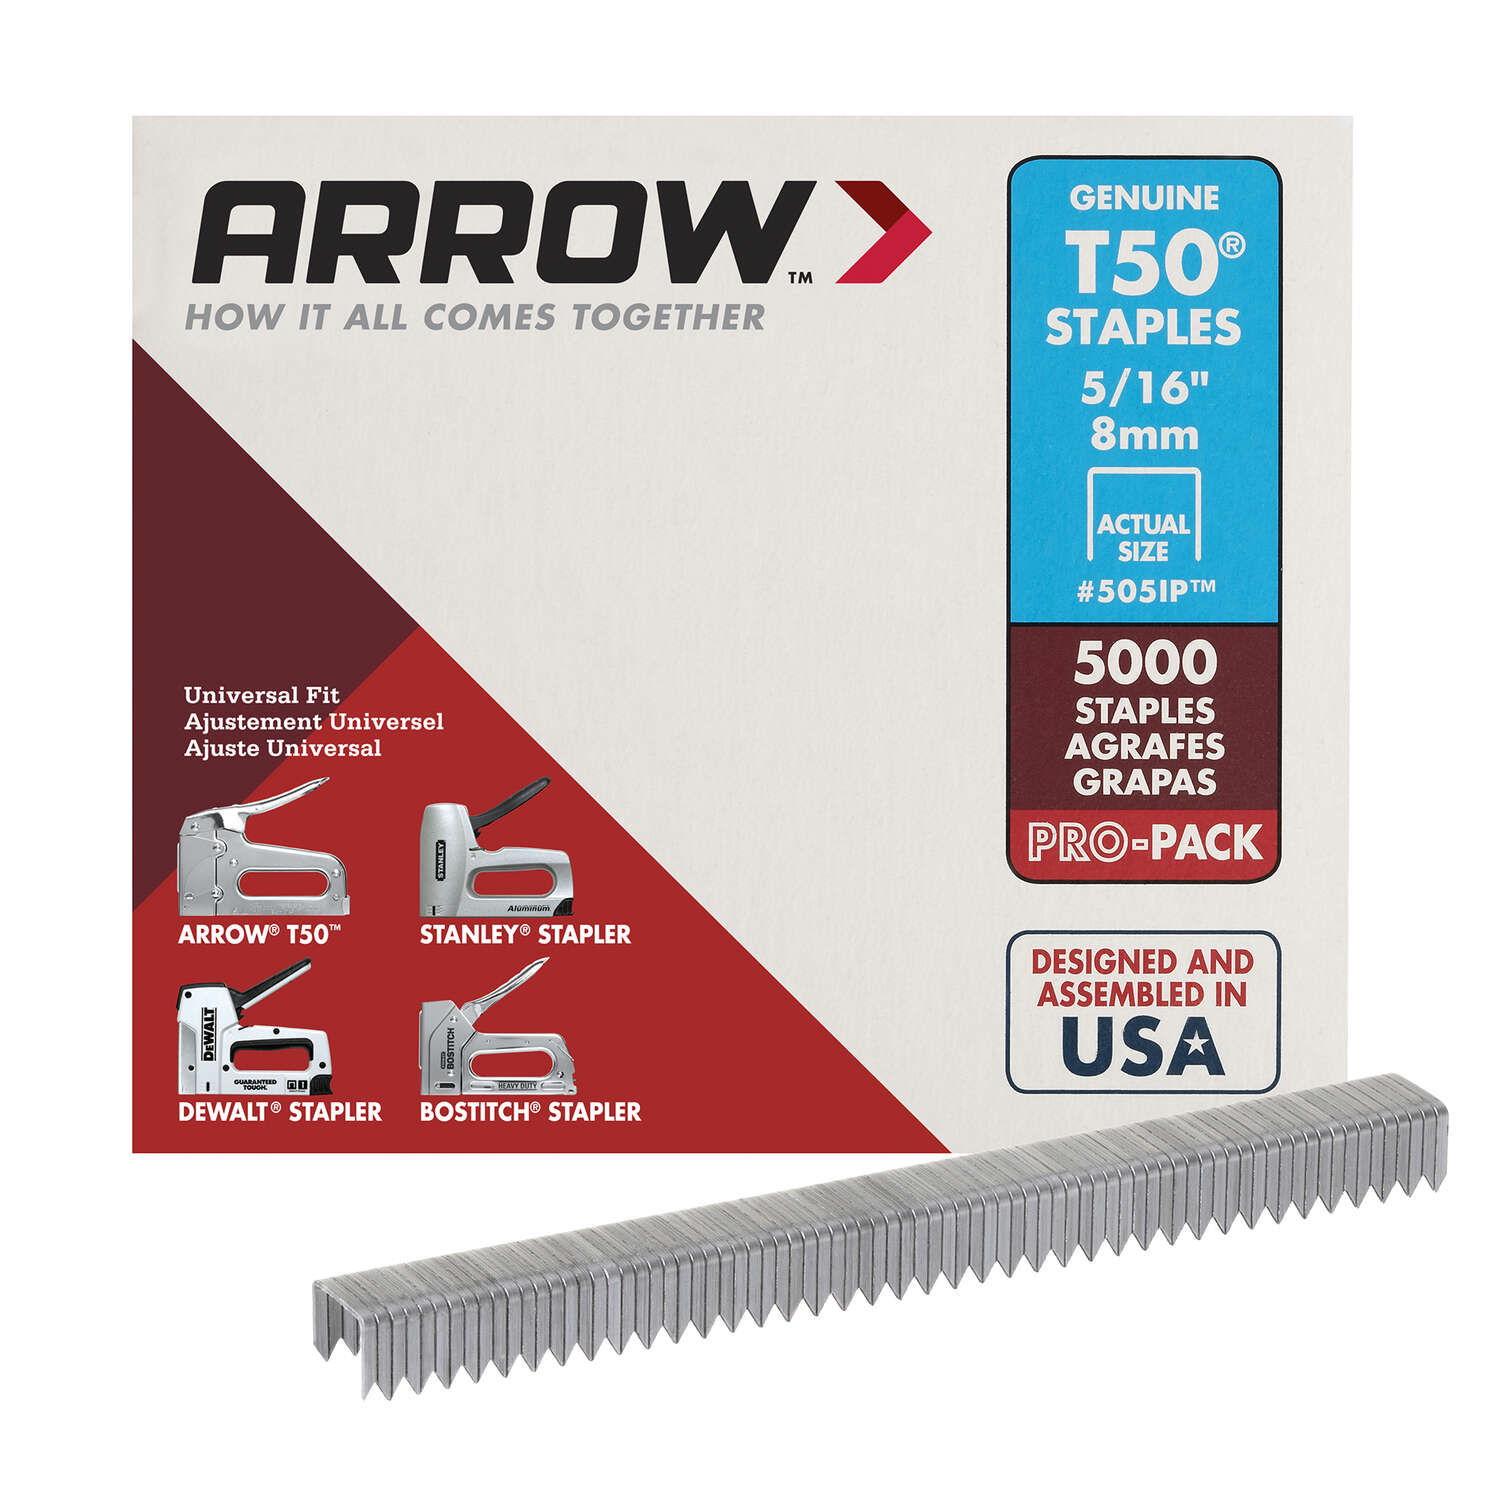 Arrow Fastener  T50  3/8 in. W x 5/16 in. L 18 Ga. Flat Crown  Heavy Duty Staples  5000 pk